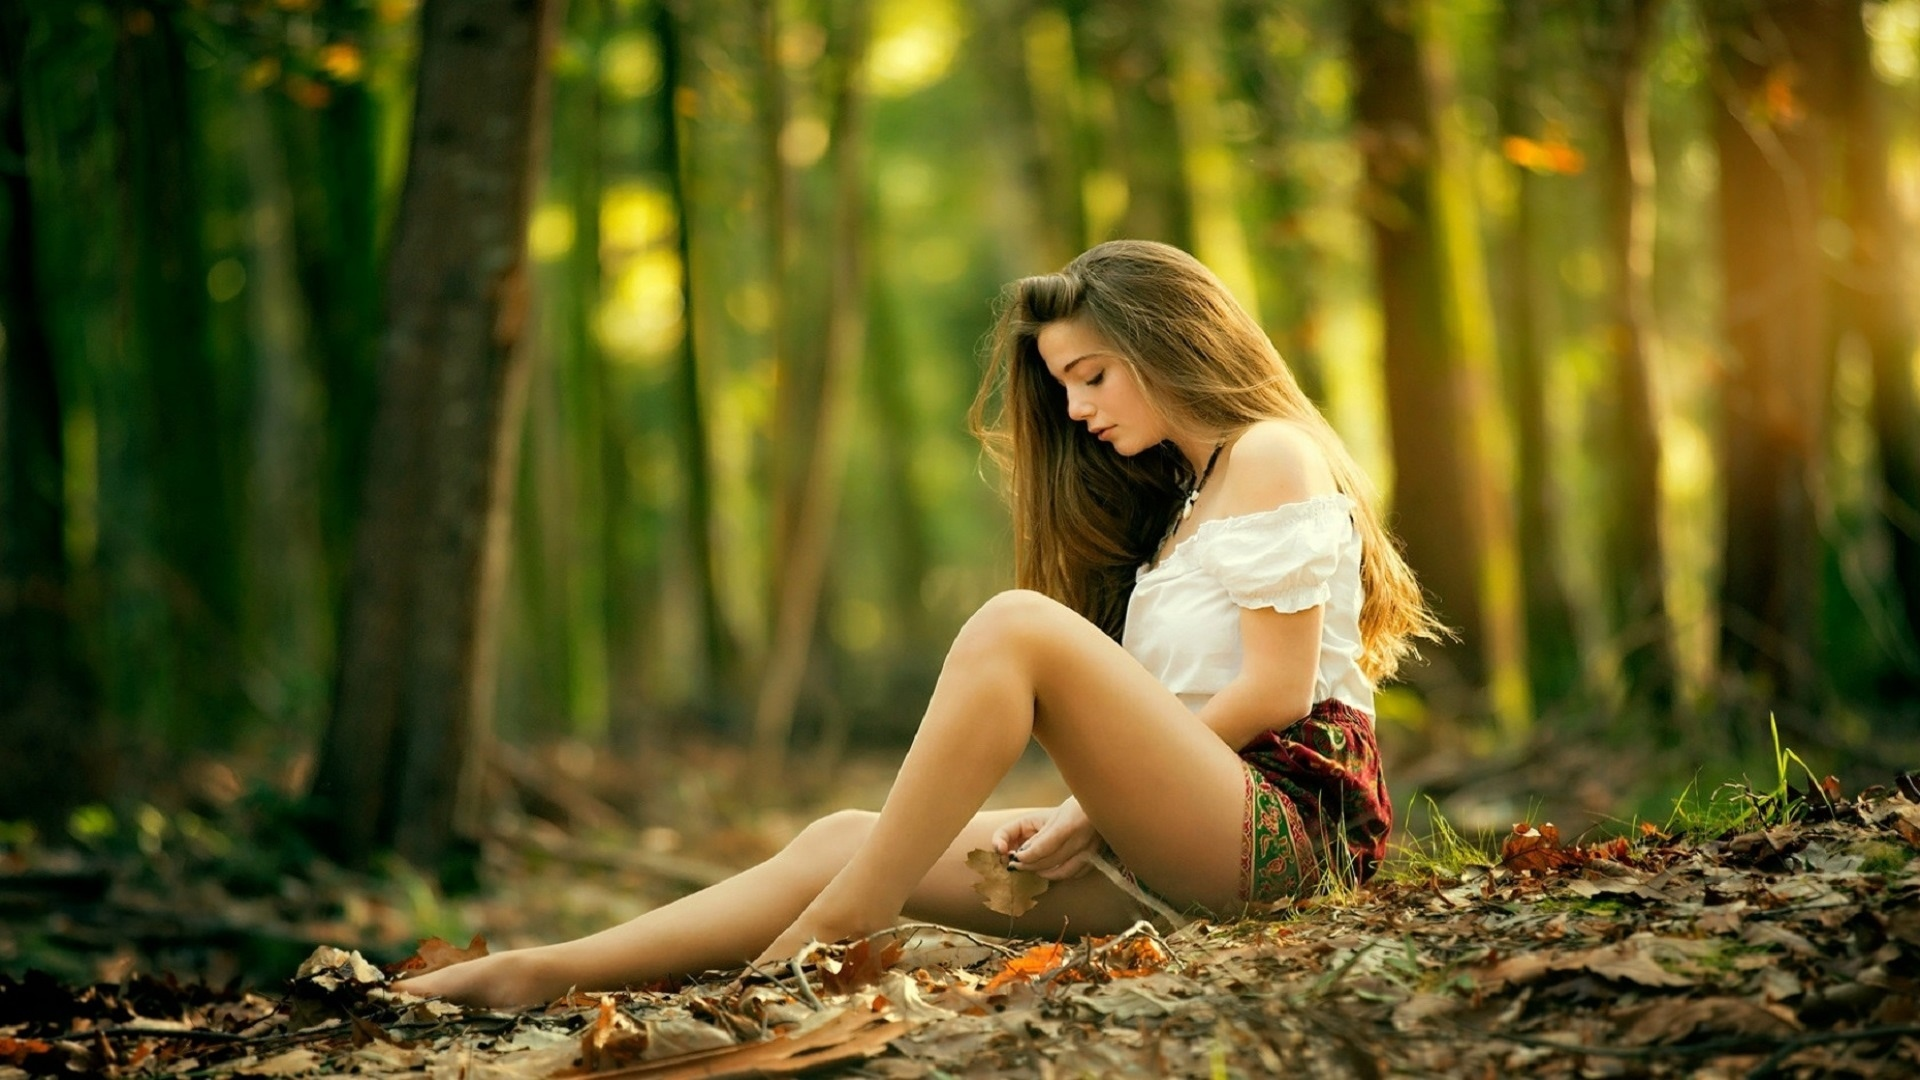 Forest nud girl wallpaper hentai videos